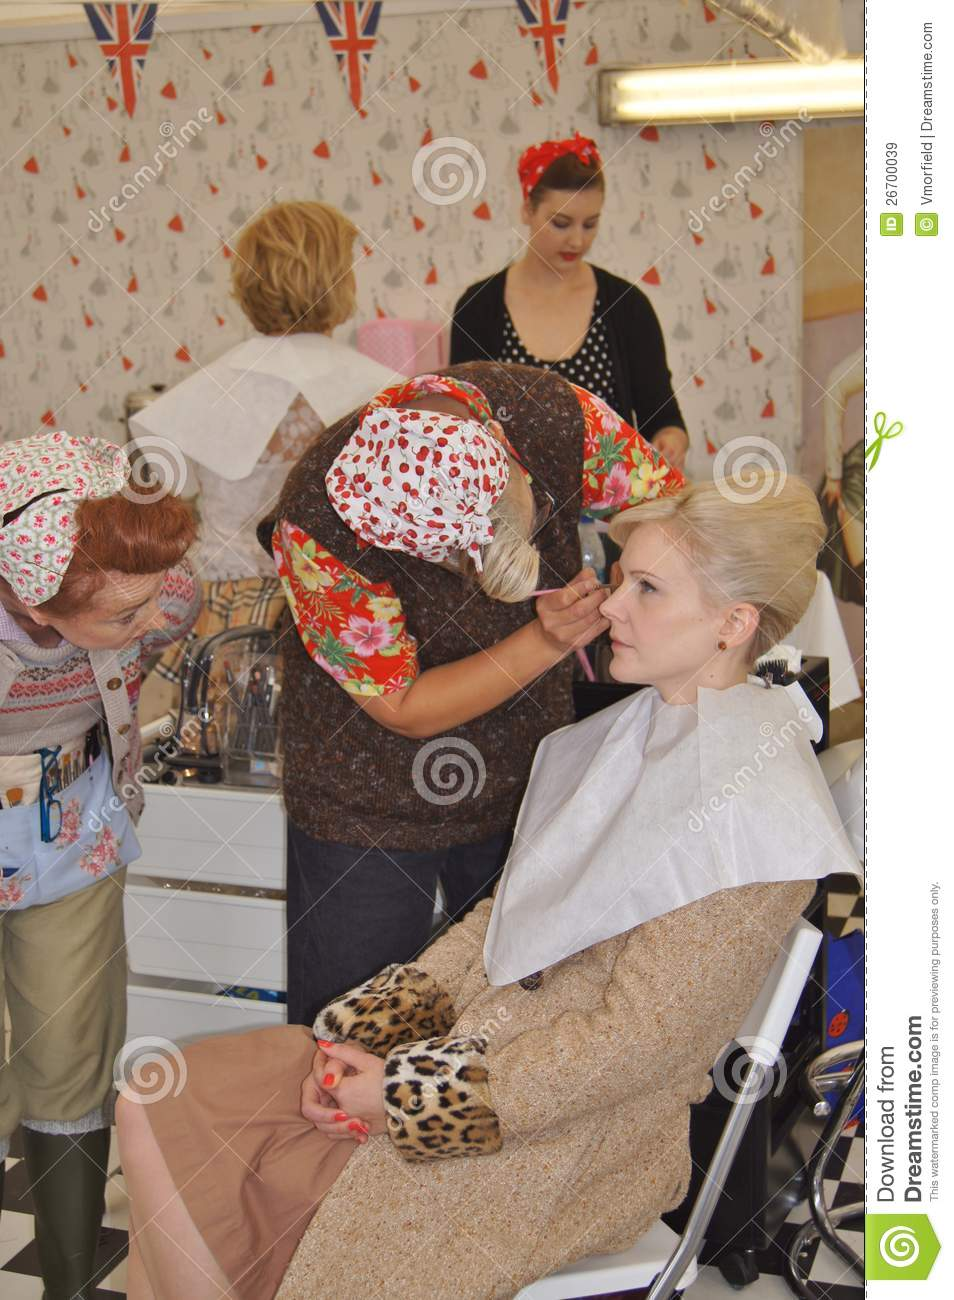 Vintage Hair And Beauty Salon Editorial Stock Image  Image of fashion coiffeurs 26700039